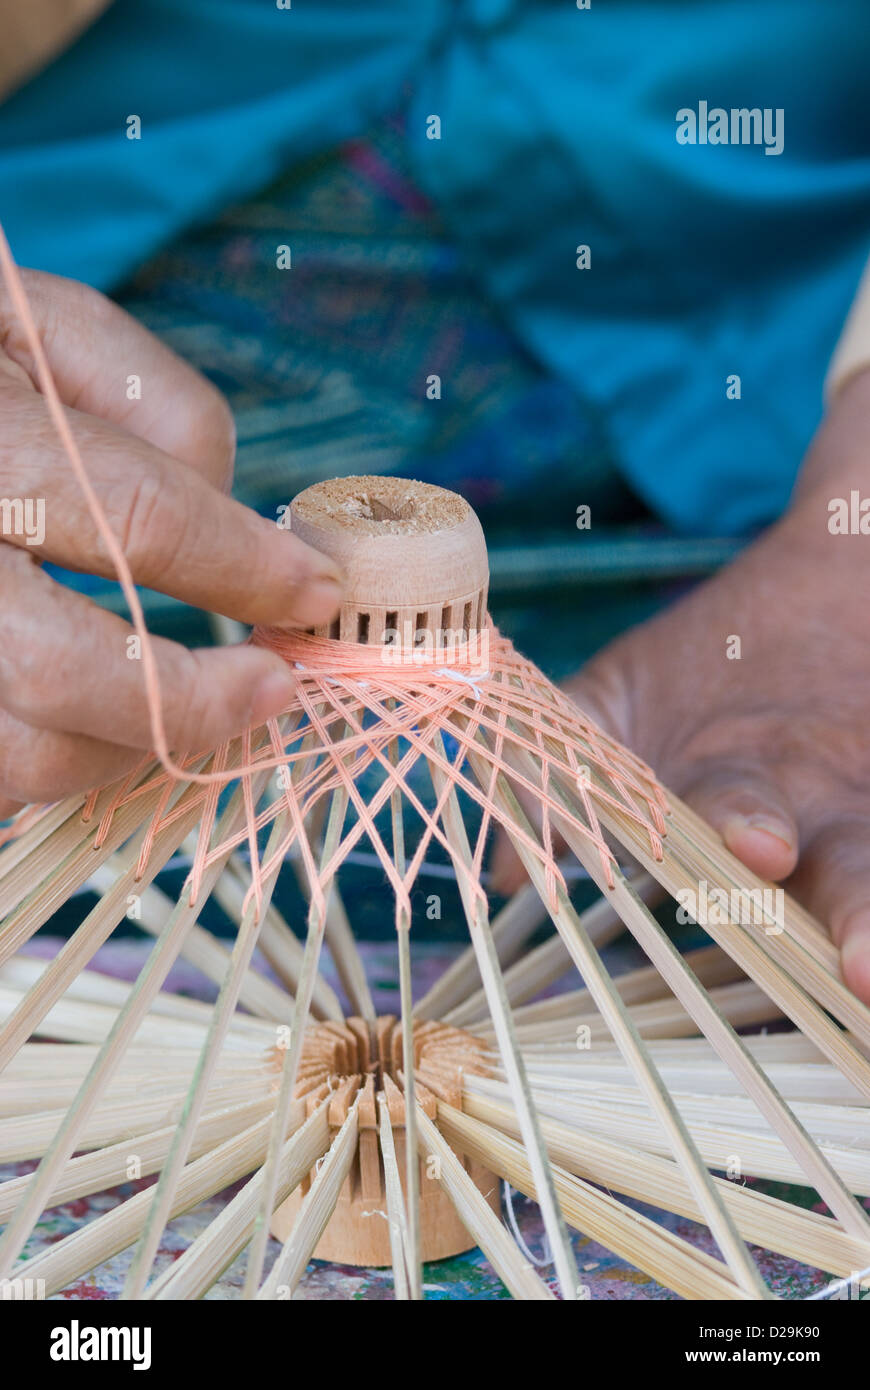 Production of wooden umbrella frame - Stock Image